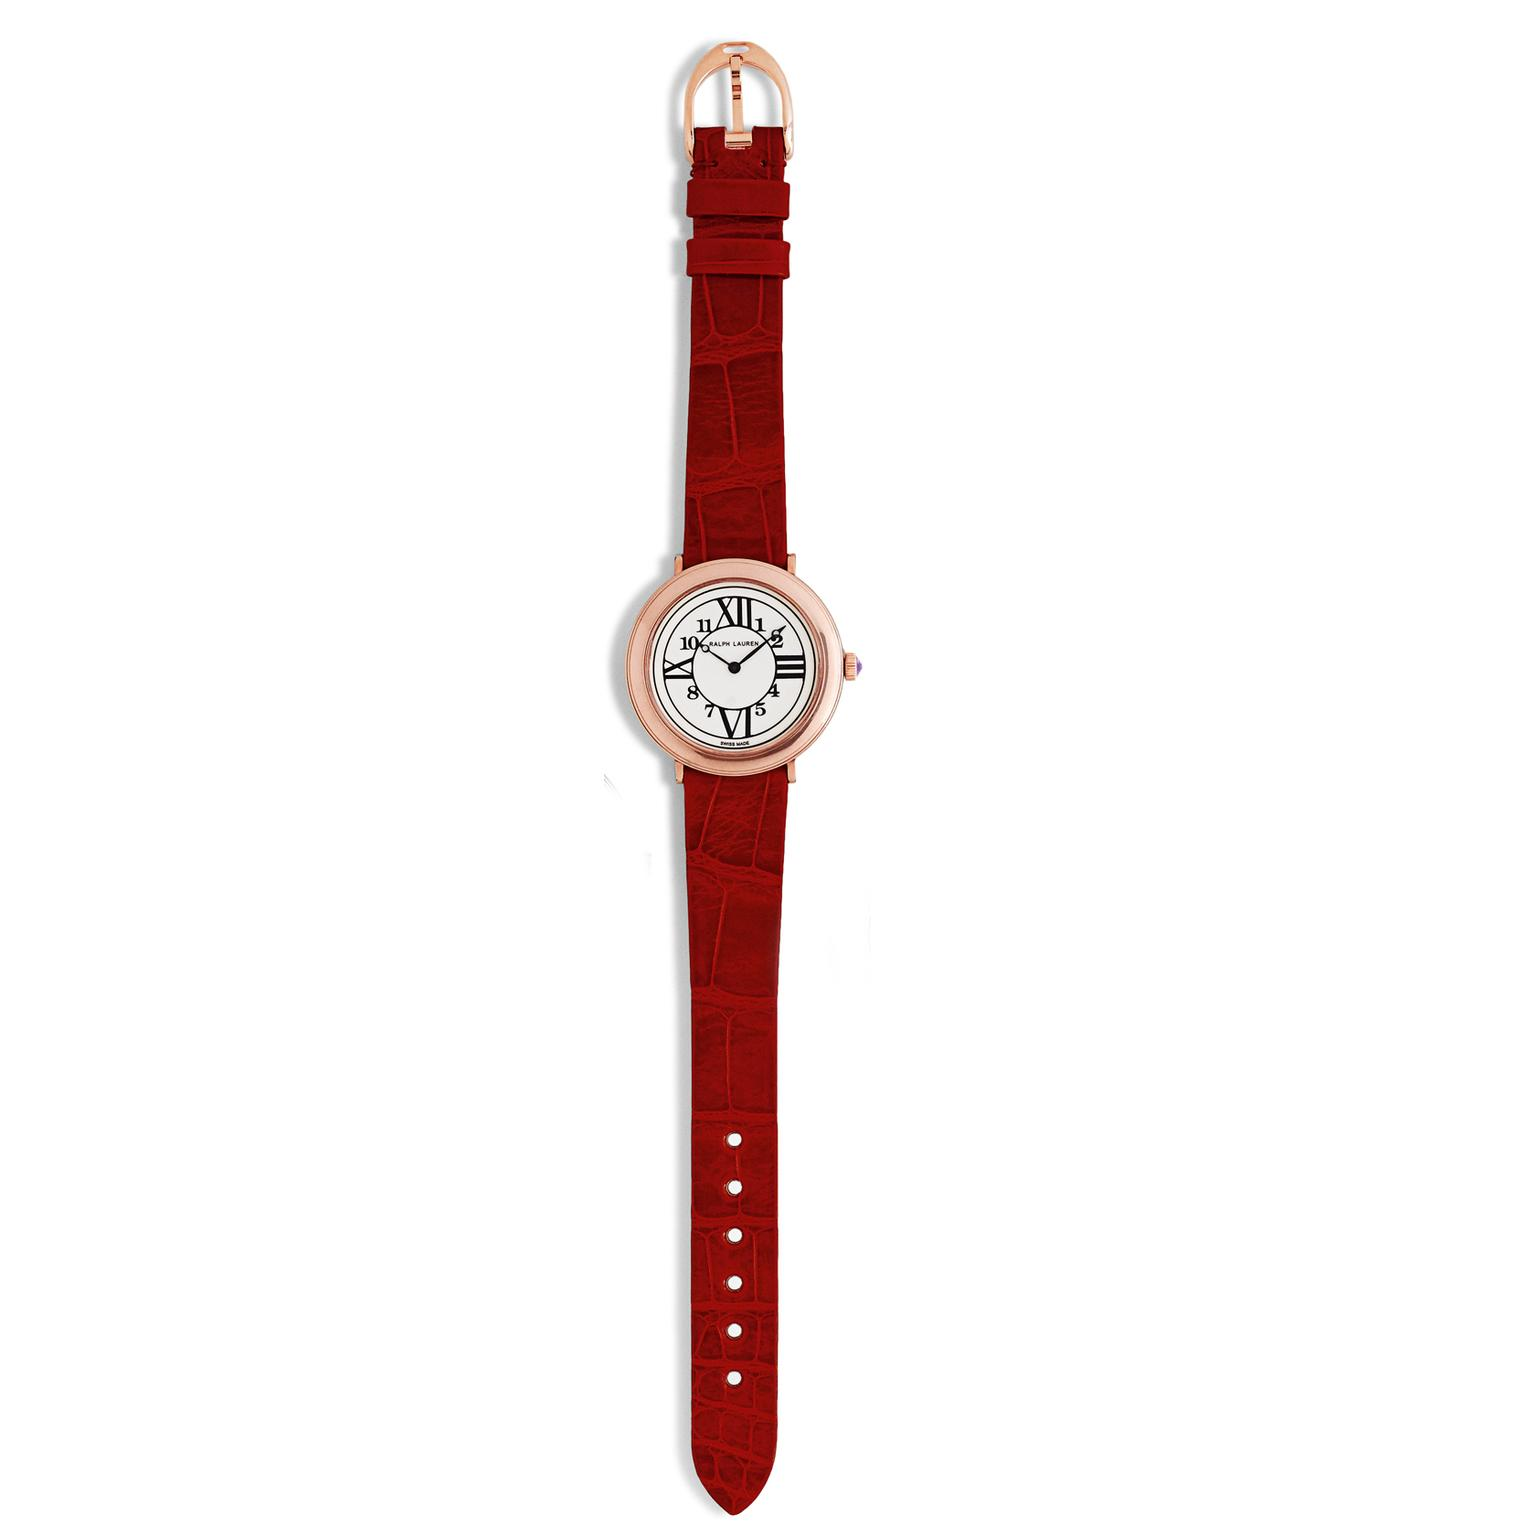 Ralph Lauren RL888 red strap